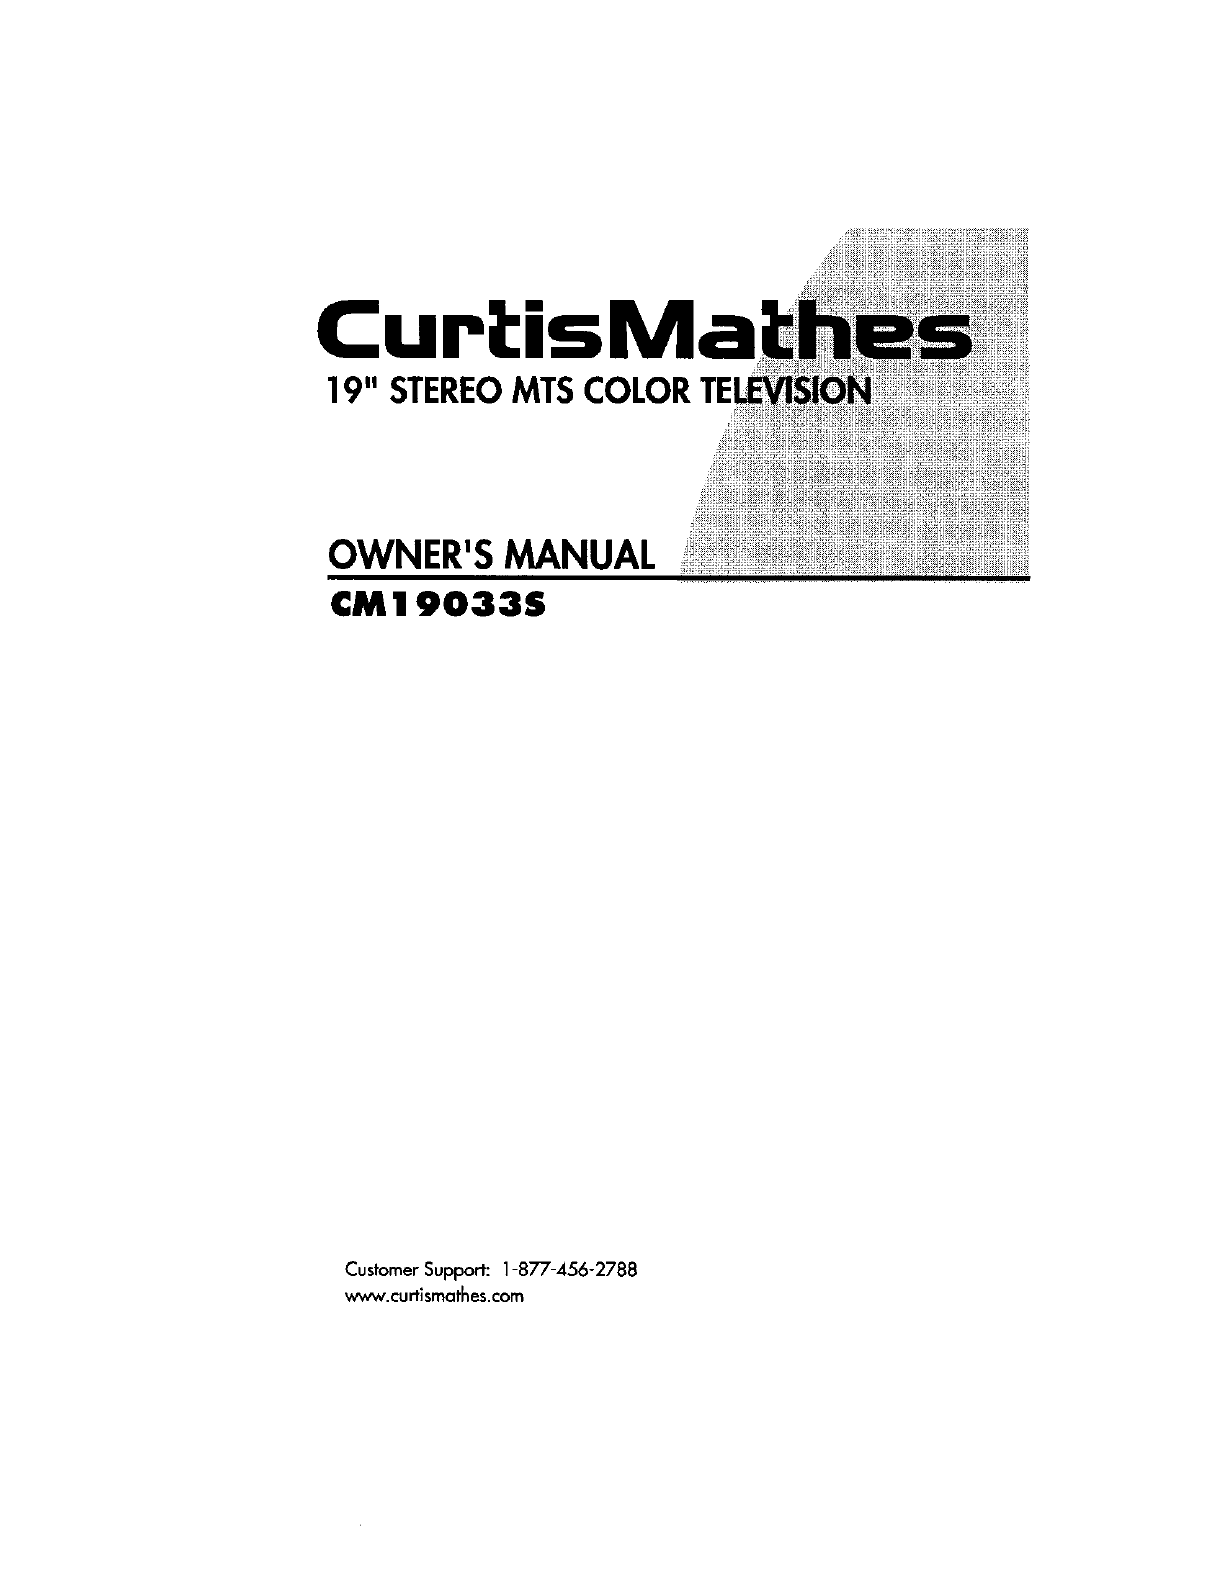 Download Curtis Mathes CRT Television CM 19033S manual and